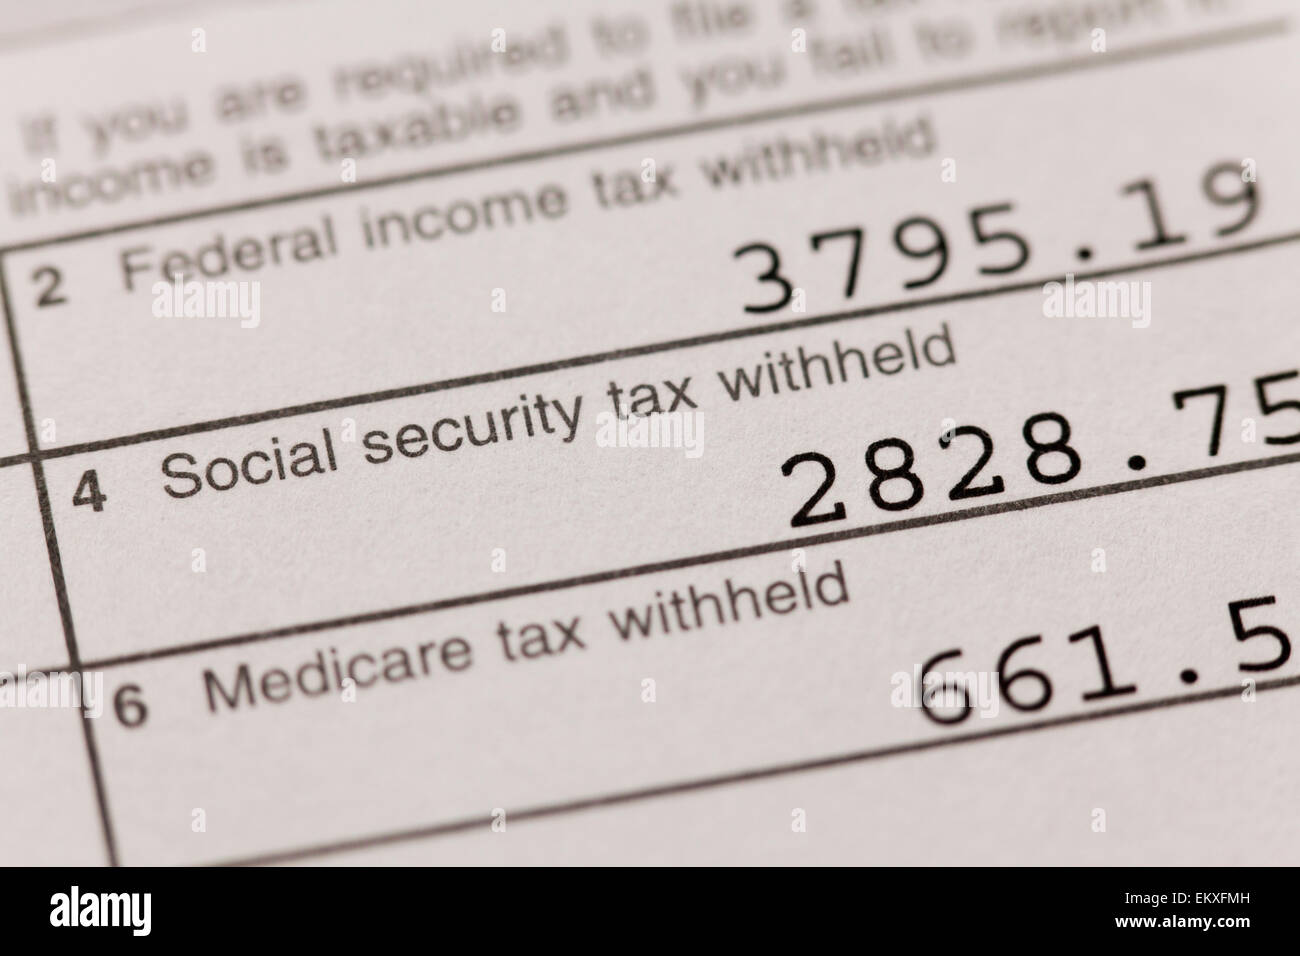 Taxes withheld on W-2 form - USA - Stock Image